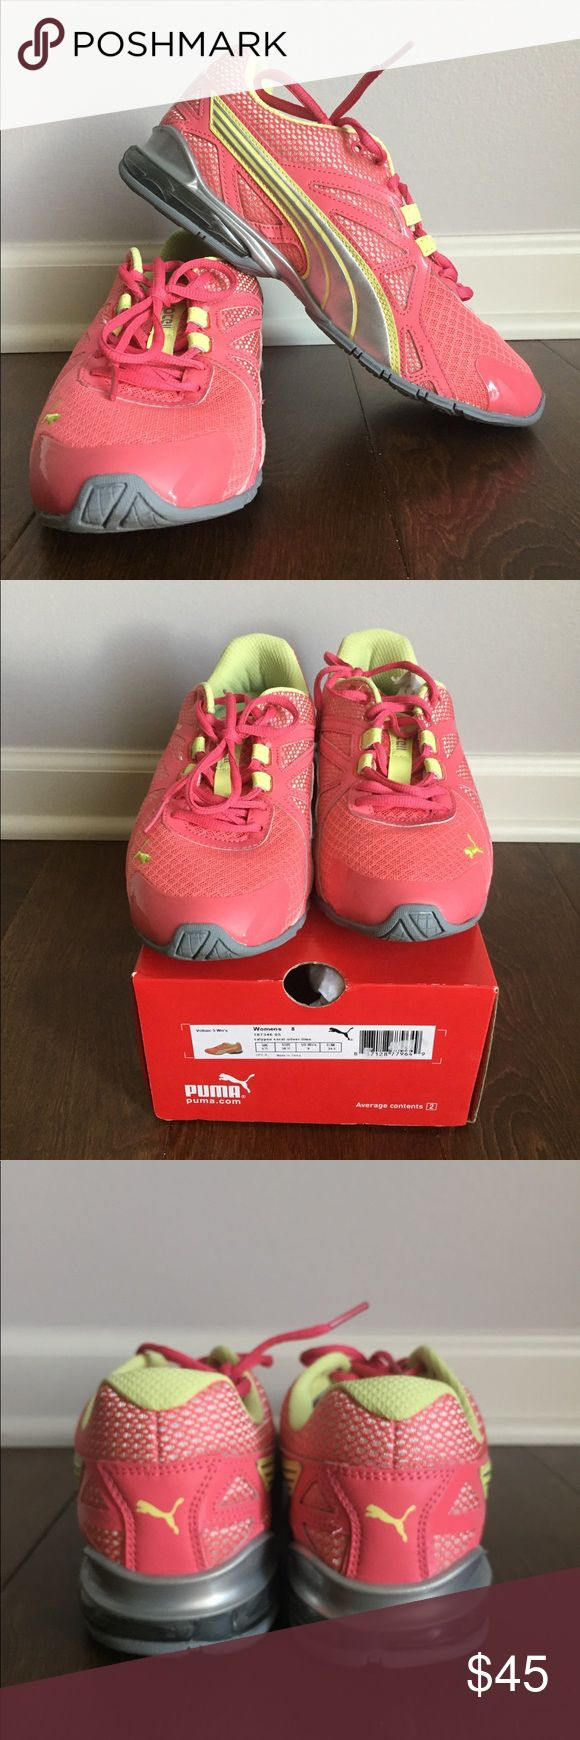 Puma running shoes Excellent puma calypso running shoe!  Still in the box. Worn outside once on a walk. No signs of wear. Size 8. Coral all over color with silver and lime accents. Puma Shoes Athletic Shoes